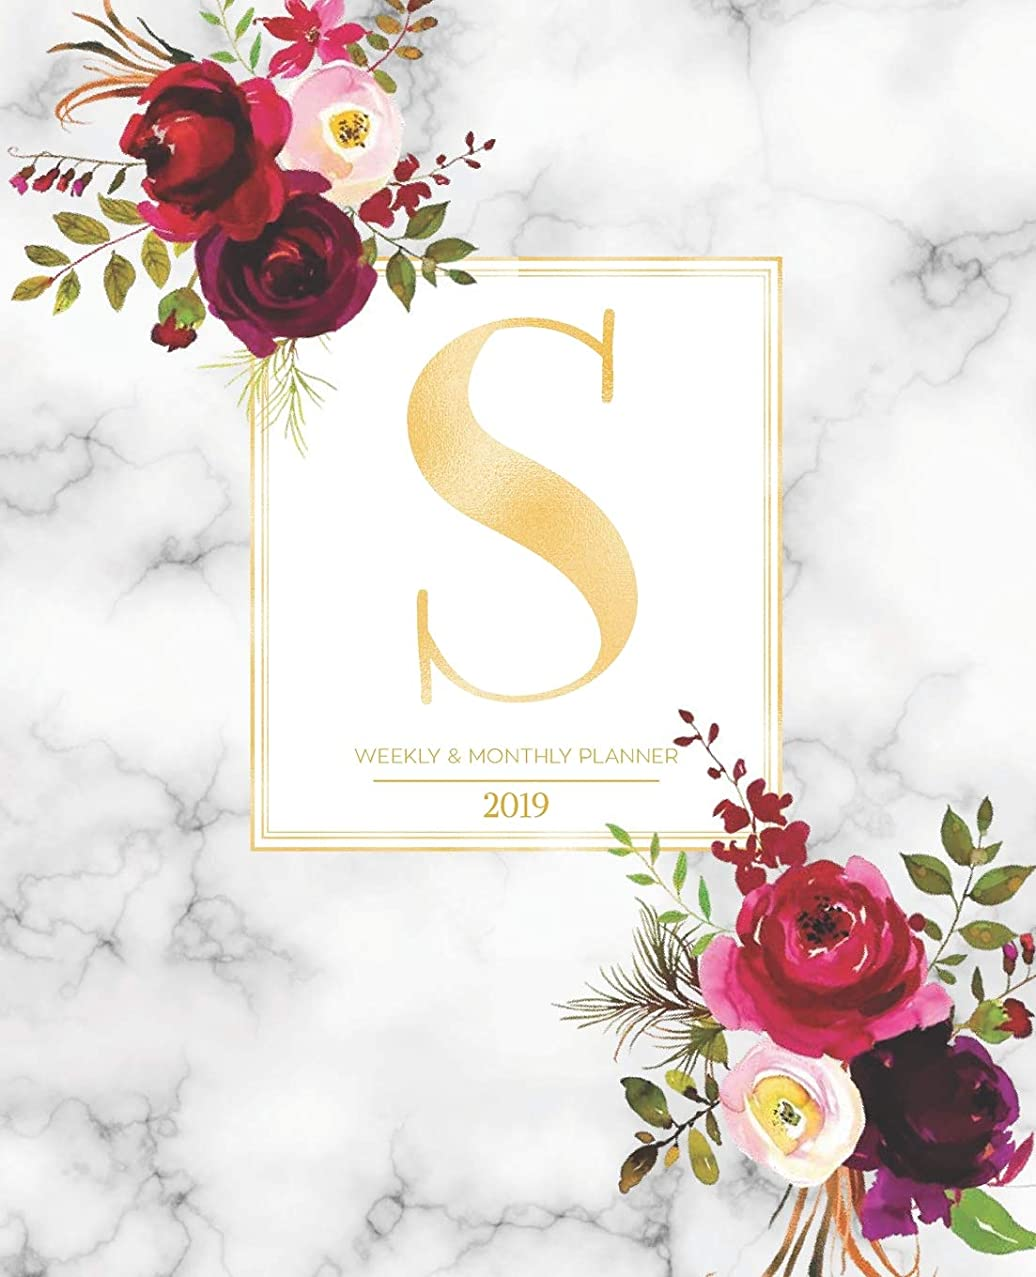 "Weekly & Monthly Planner 2019: Burgundy Florals & Gold Monogram Letter S Marble with Marsala Flowers (7.5 x 9.25"") Vertical AT A GLANCE Personalized Planner for Women Moms Girls and School"